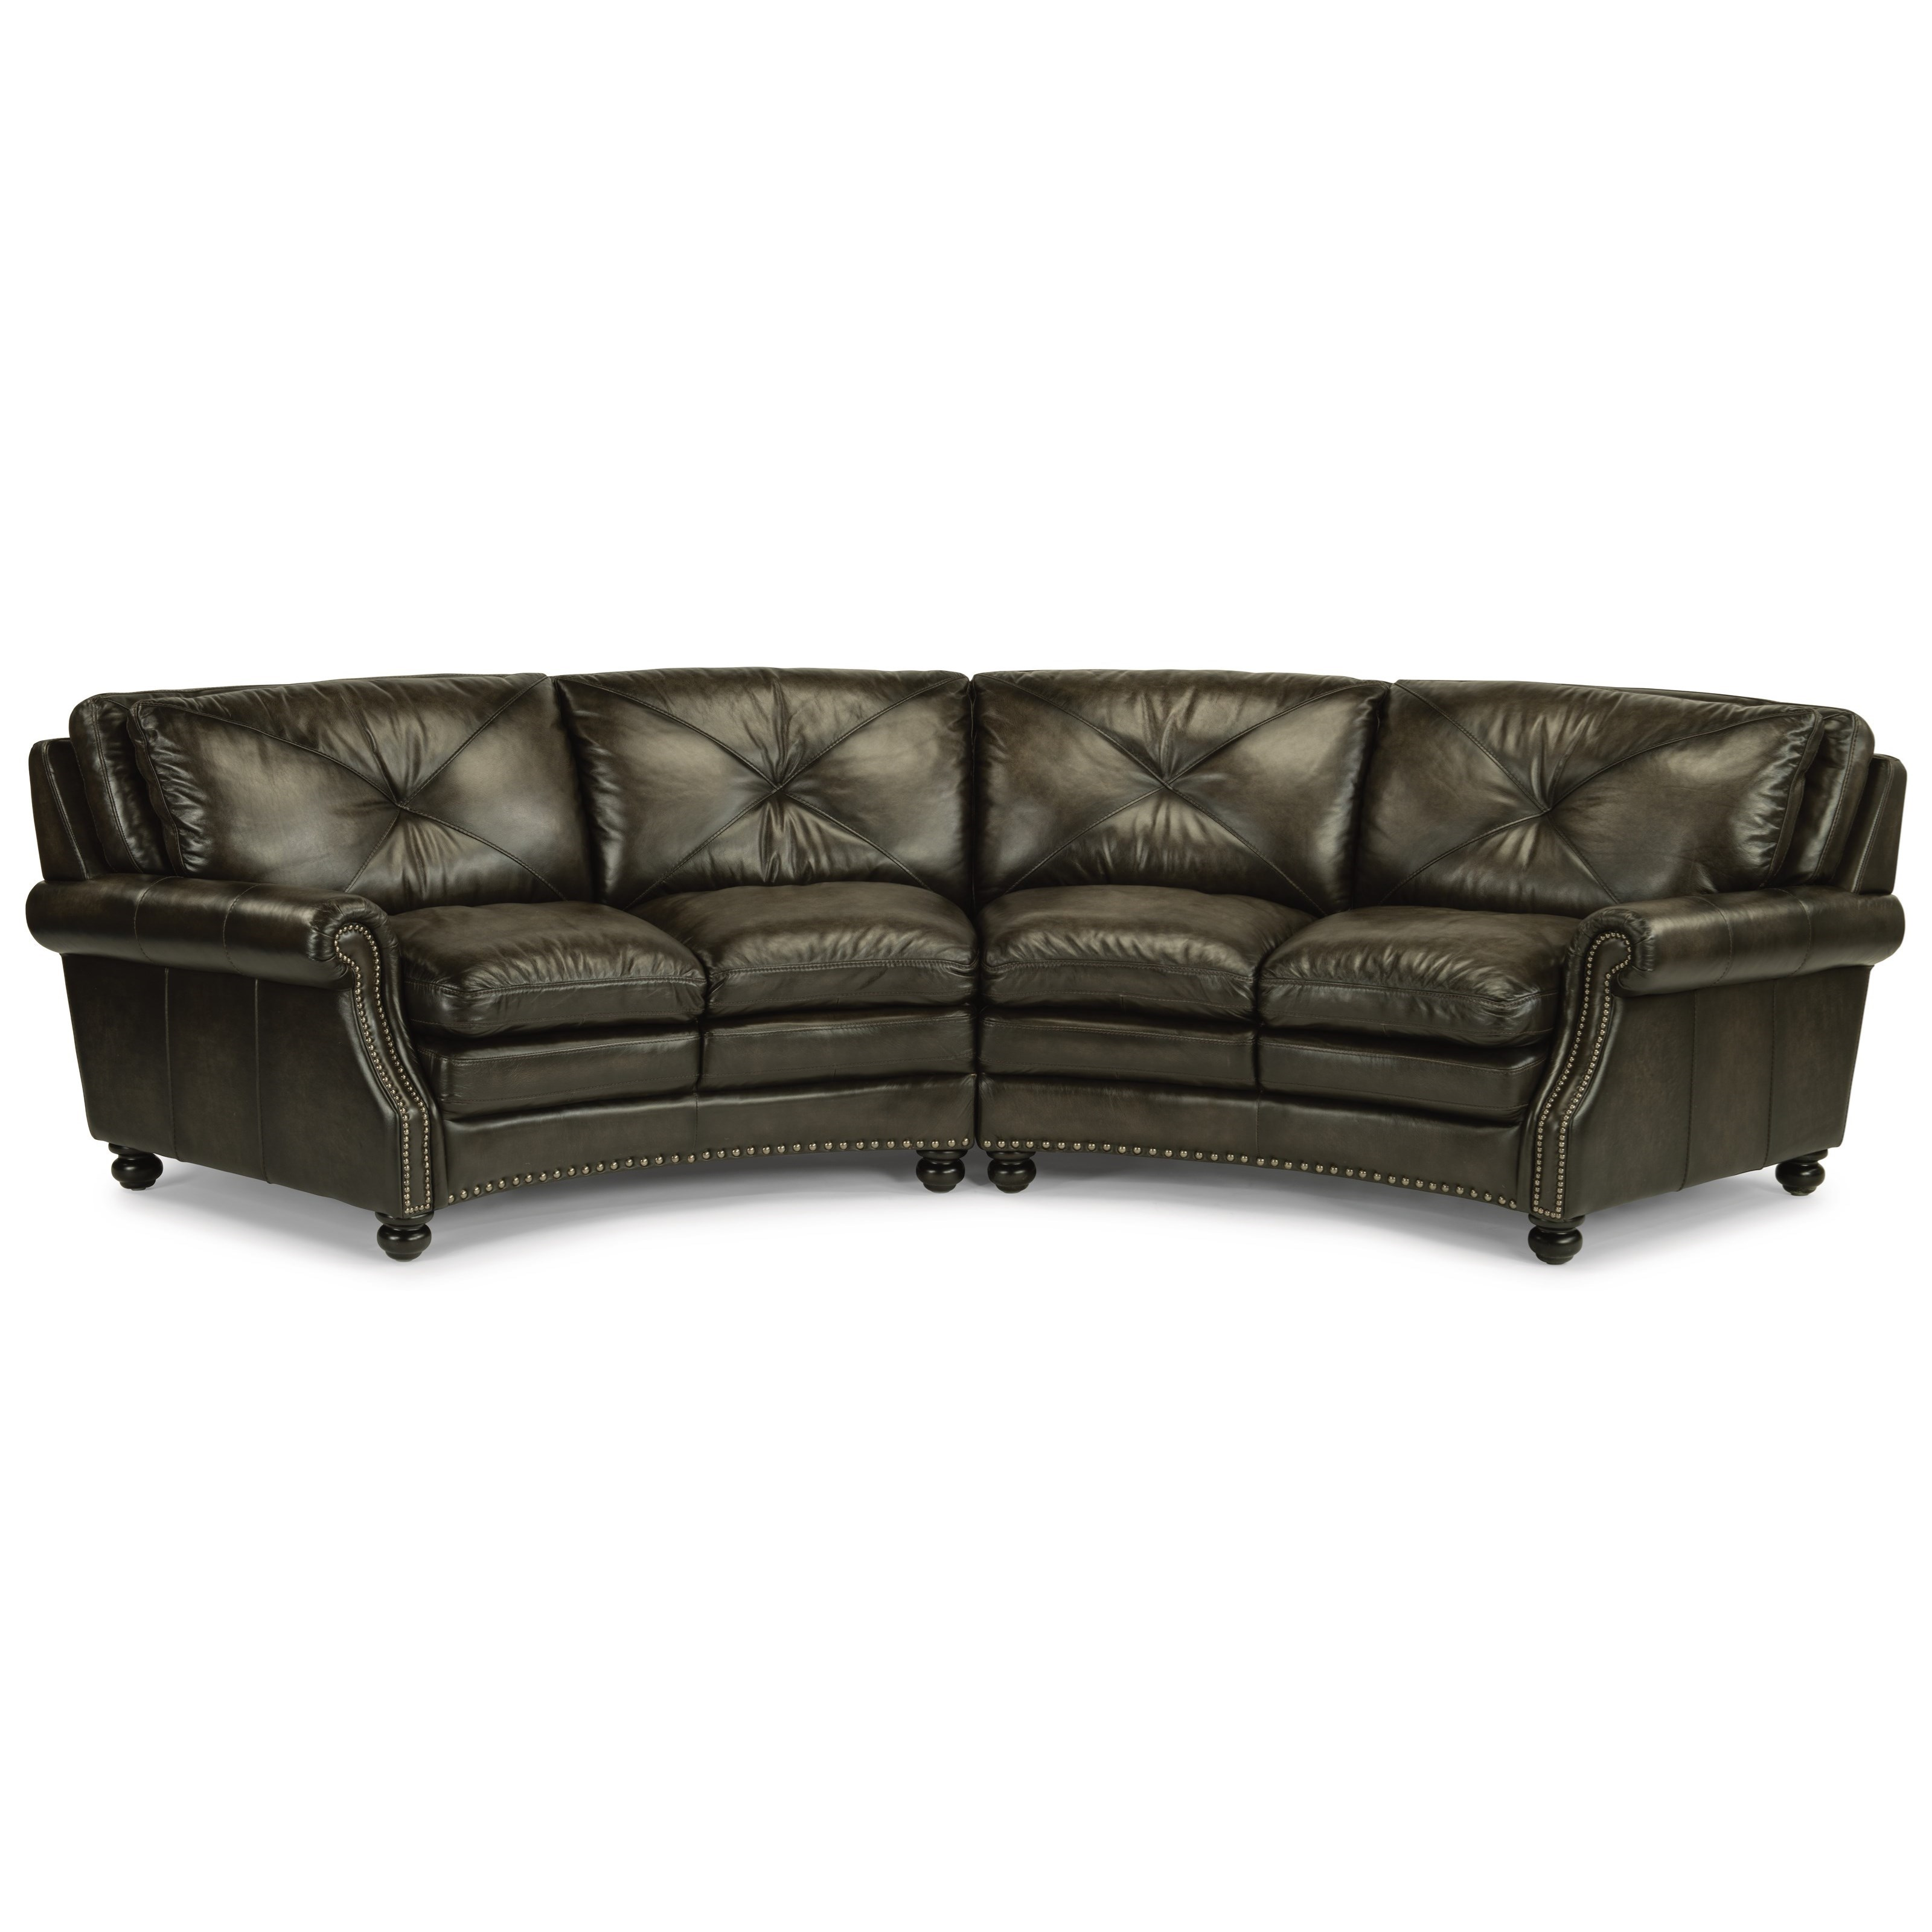 Stressless Sofa Rund Latitudes Suffolk Round Sectional Sofa With Nailhead Trim By Flexsteel At Dunk Bright Furniture